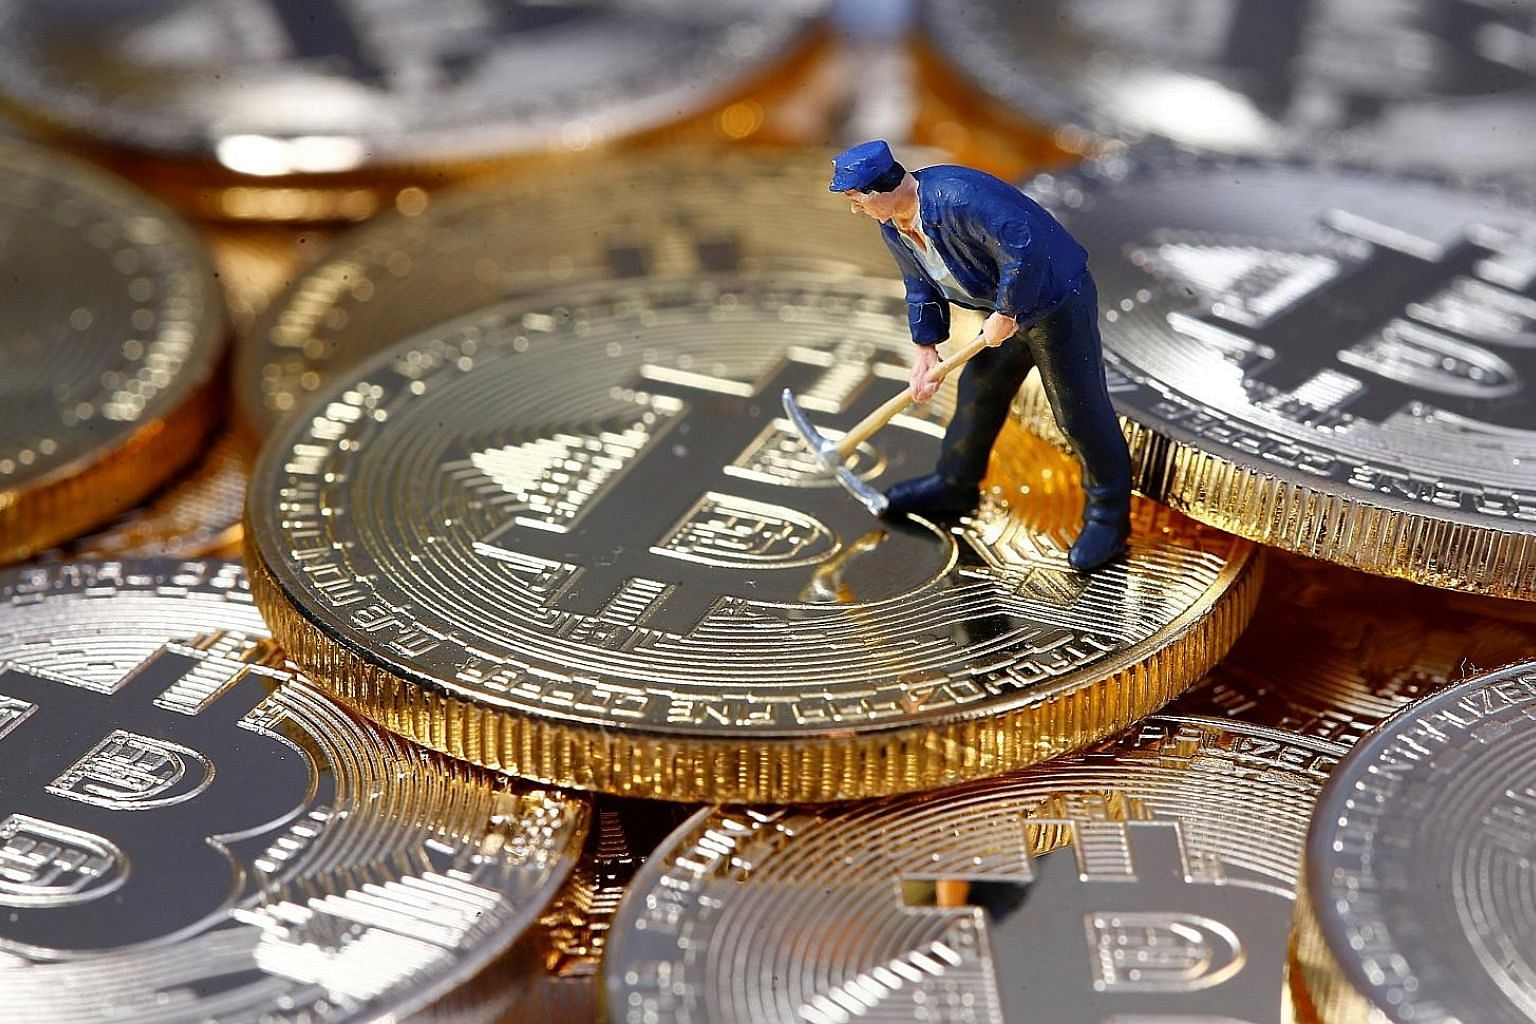 At the most basic level, bitcoin has introduced a new way to hold and send around value online. Anyone can open a bitcoin wallet and receive money from a friend or a stranger. The system works without any central authority, thanks to a network of com